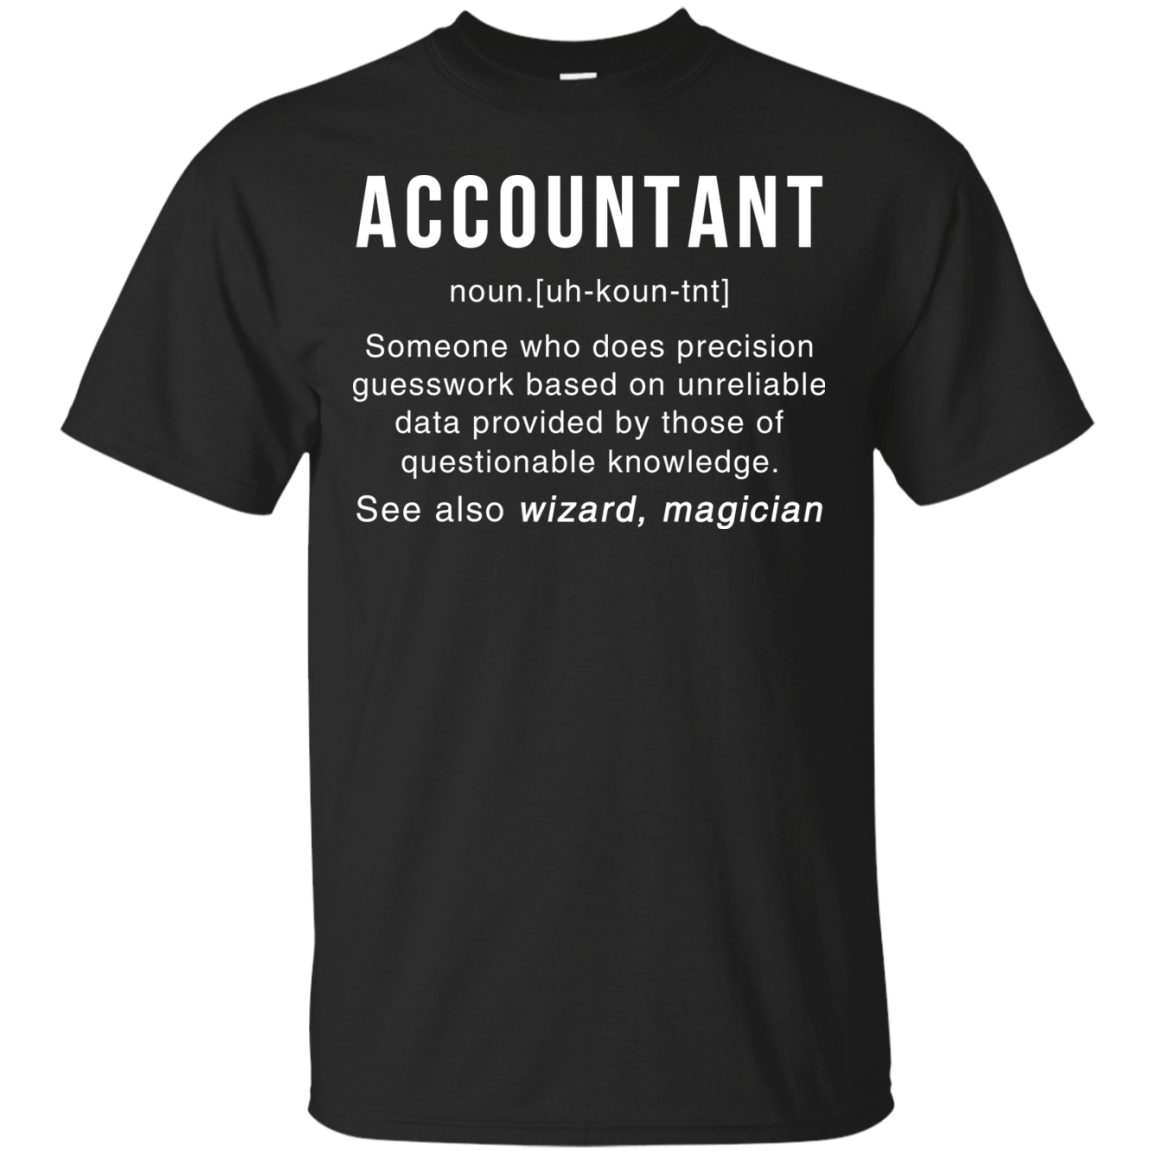 Accountant Meaning T shirt Accountant Noun Definition tee